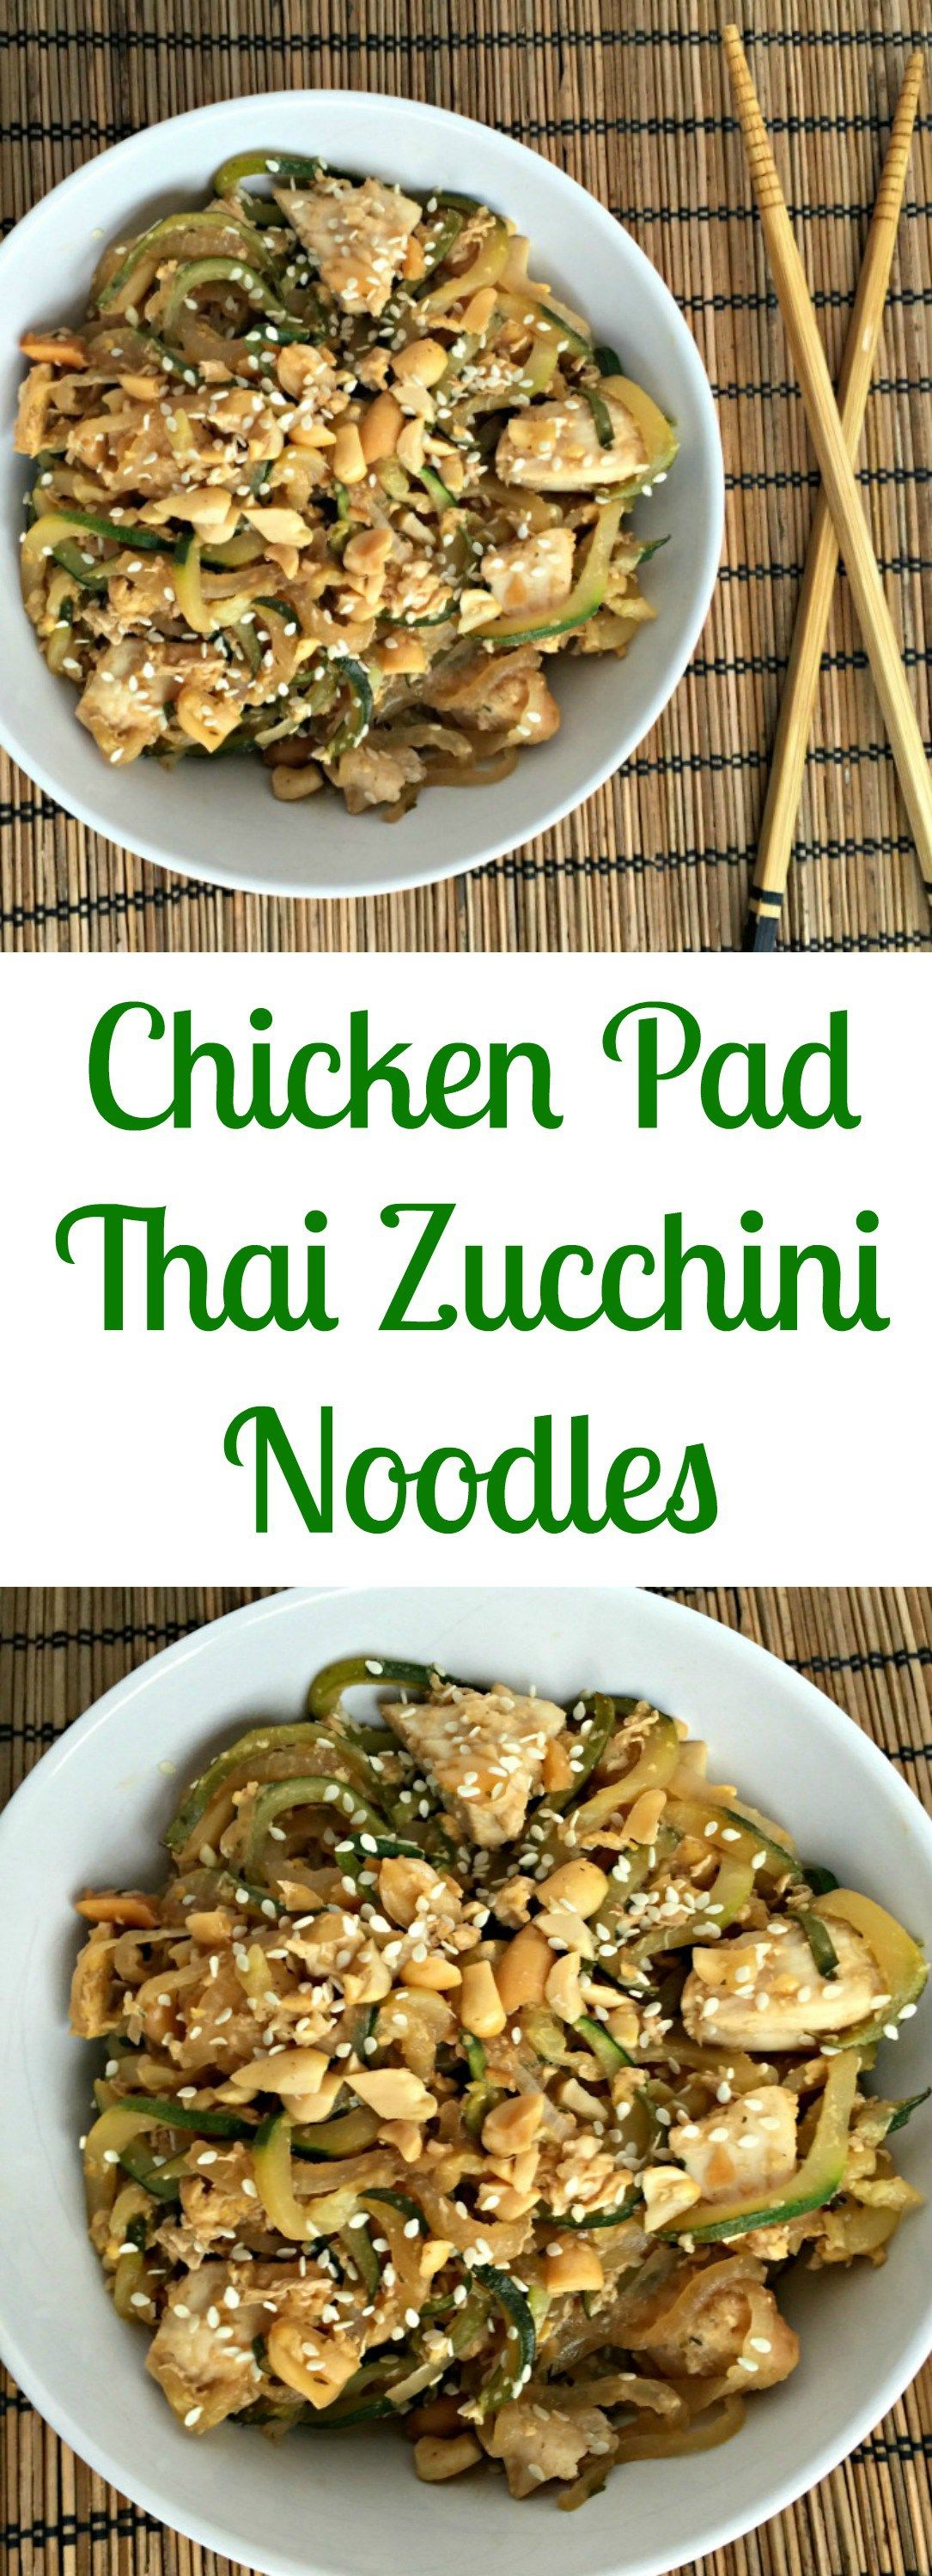 chicken pad thai zucchini noodles with images  zoodle